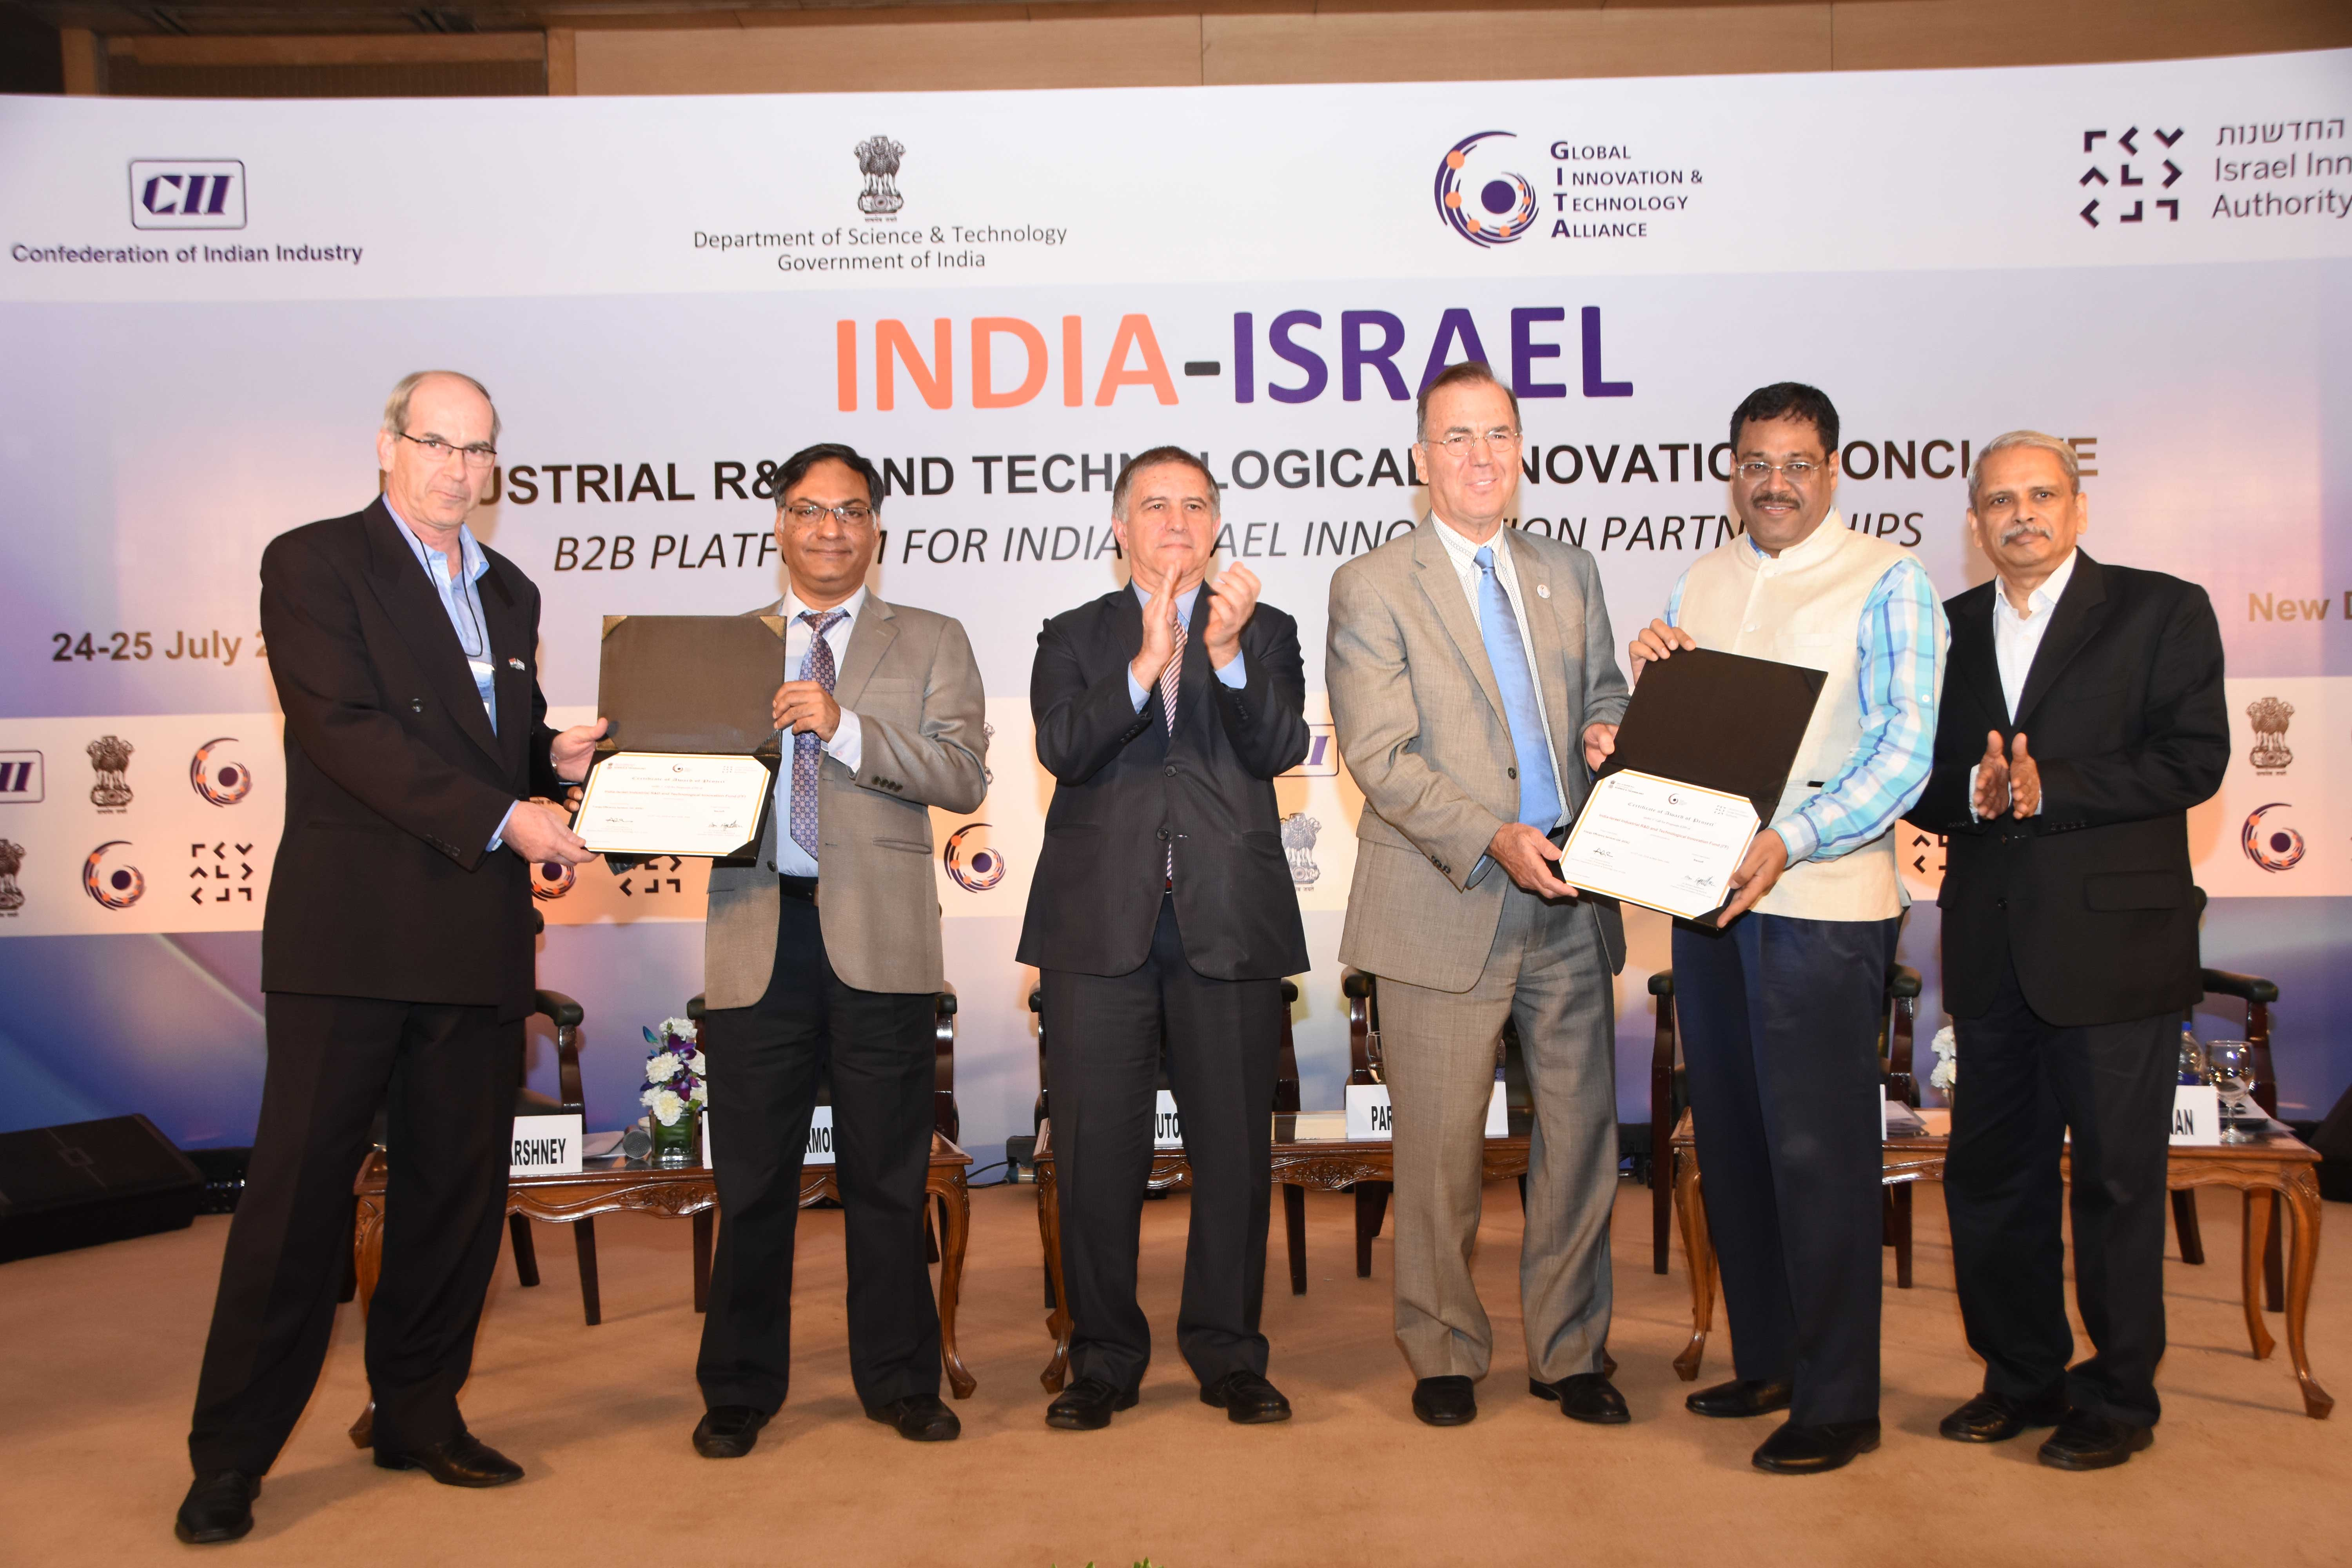 FOUR PROJECTS AWARDED UNDER 1ST CALL FOR PROPOSALS UNDER US$40 MILLION INDIA ISRAEL INNOVATION FUND (I4F)